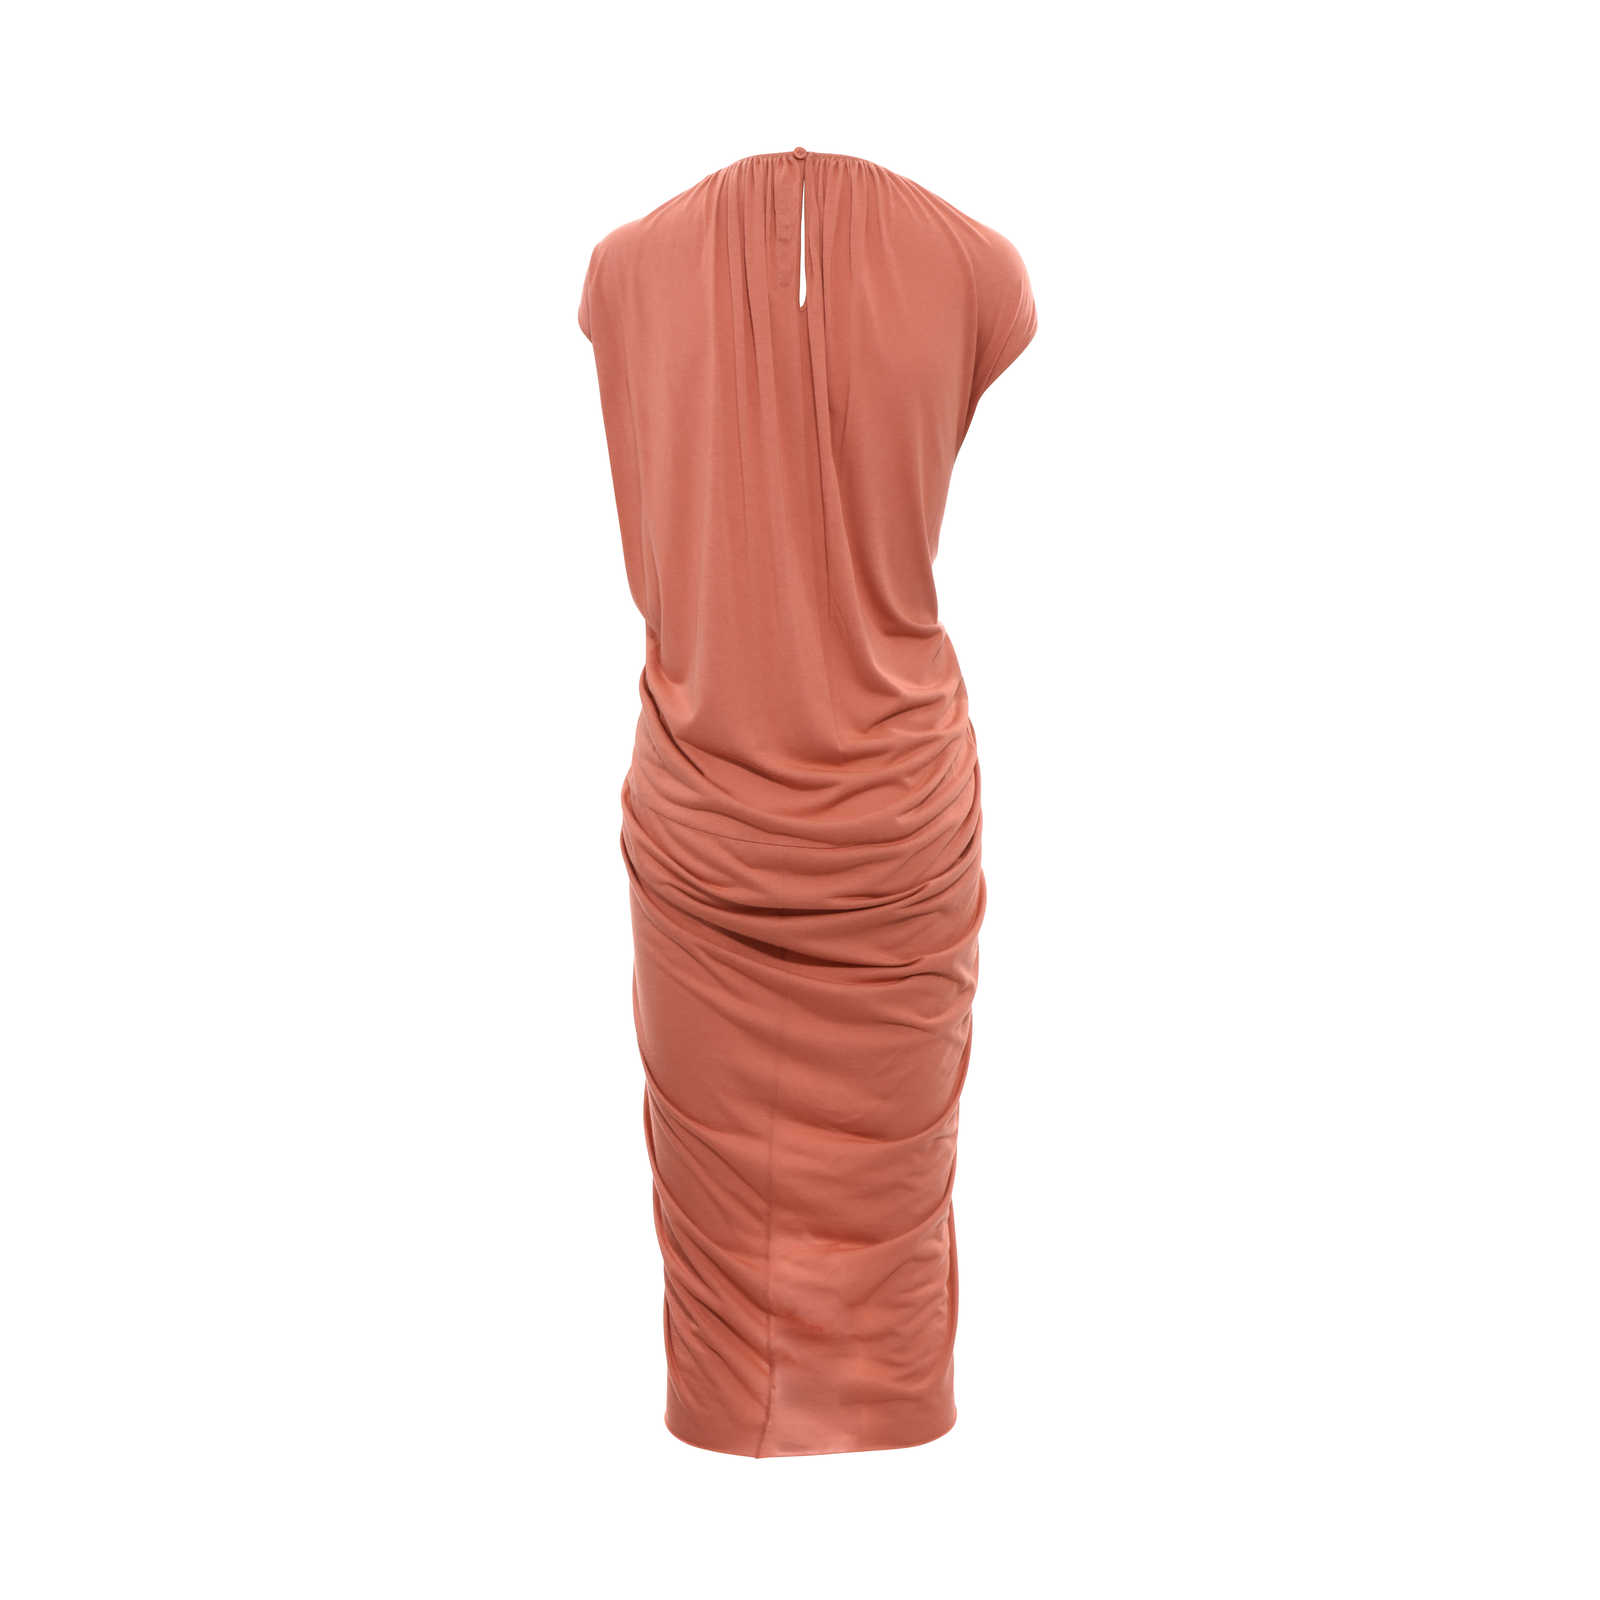 6b1b8c30d53 ... Authentic Second Hand Rick Owens Lilies Gathered Front Drape Dress  (PSS-366-00032 ...